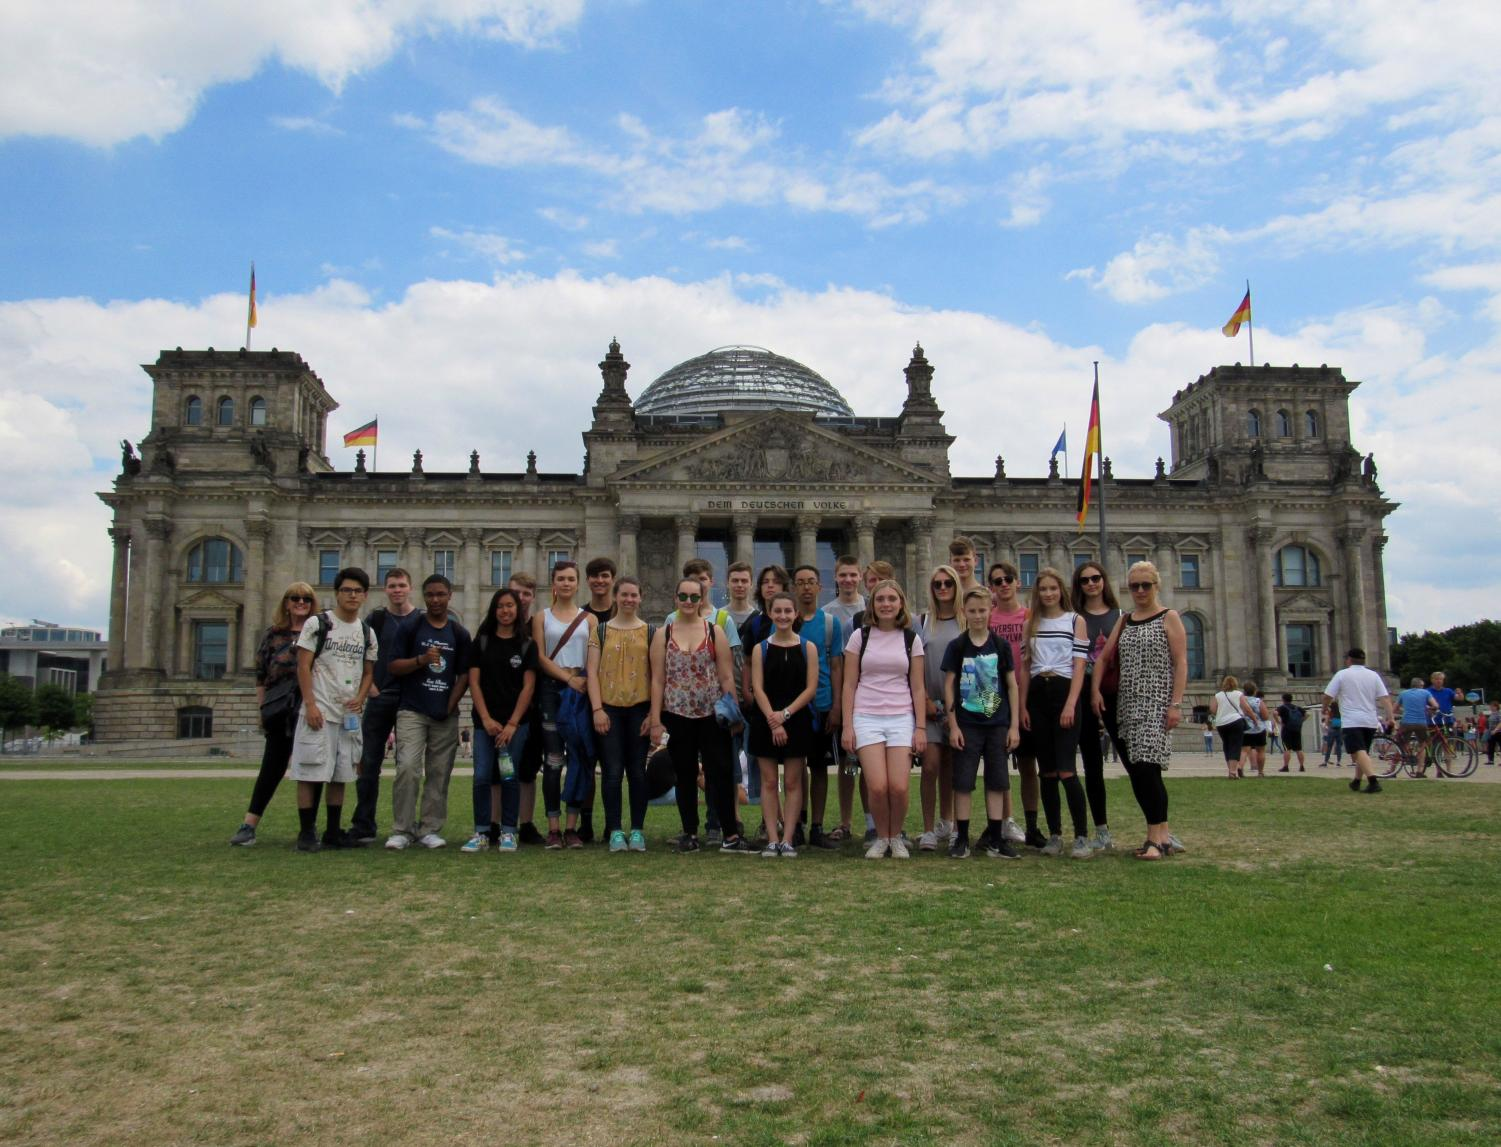 The AATG students with their German hosts visited the famous German parliament building called